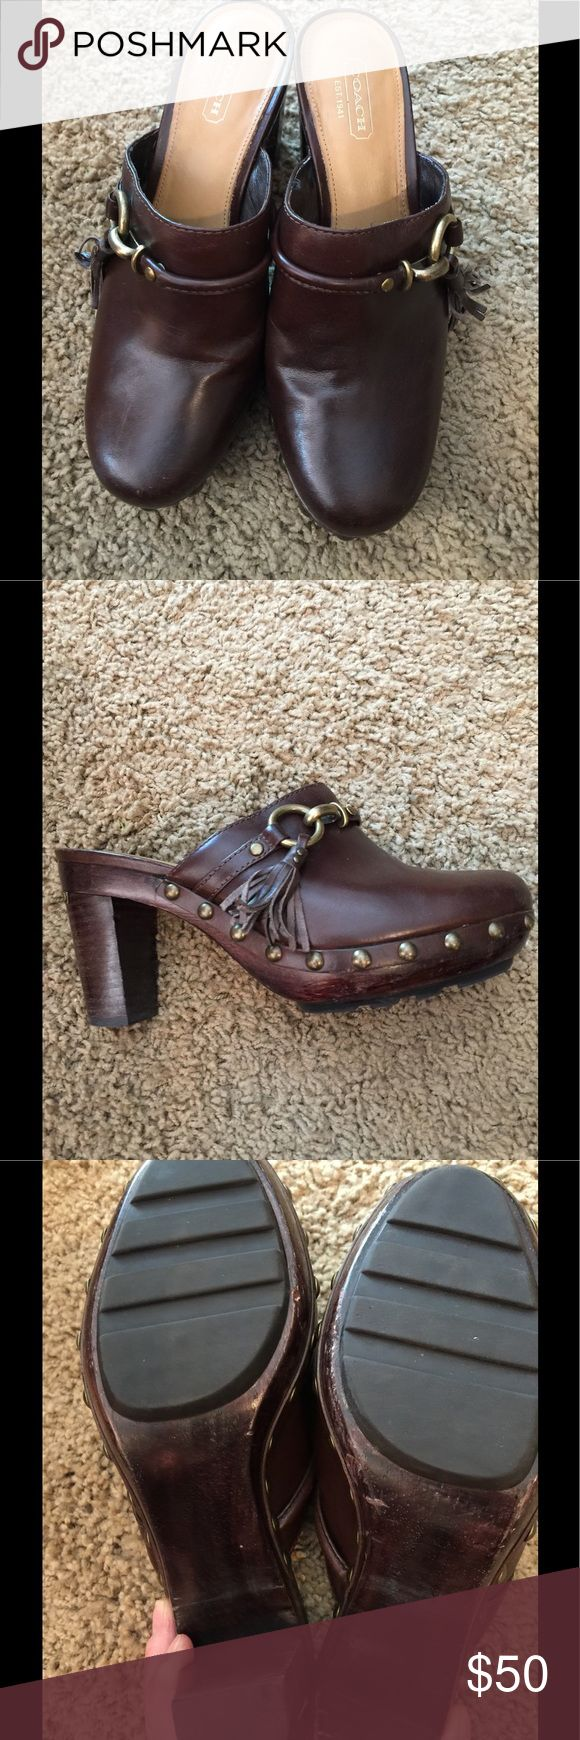 Coach clogs Brown Vachetta leather Coach clogs. 3 inch heel, one inch platform. A few scuffs on the wood clog portion but otherwise great condition. Look super cute with all styles of jeans. I bought them even though they are a 7 and I wear a 6.5 because I loved them. Still love them but they are just too big! Run very true to size. Coach Shoes Mules & Clogs